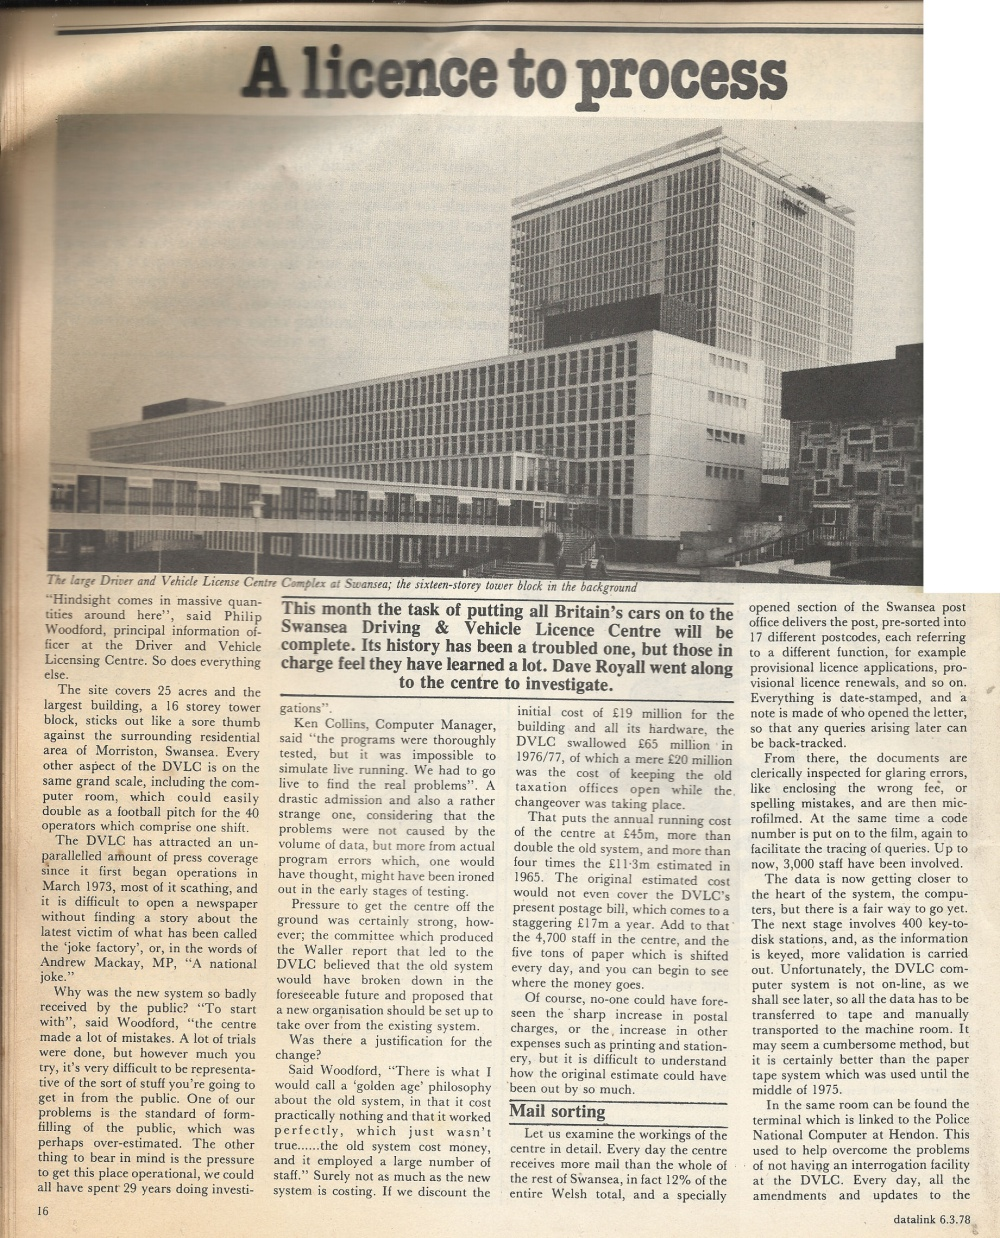 Scan of Document: Datalink Article - 'A Licence to Process' - Computing at the DVLC, c. 1978